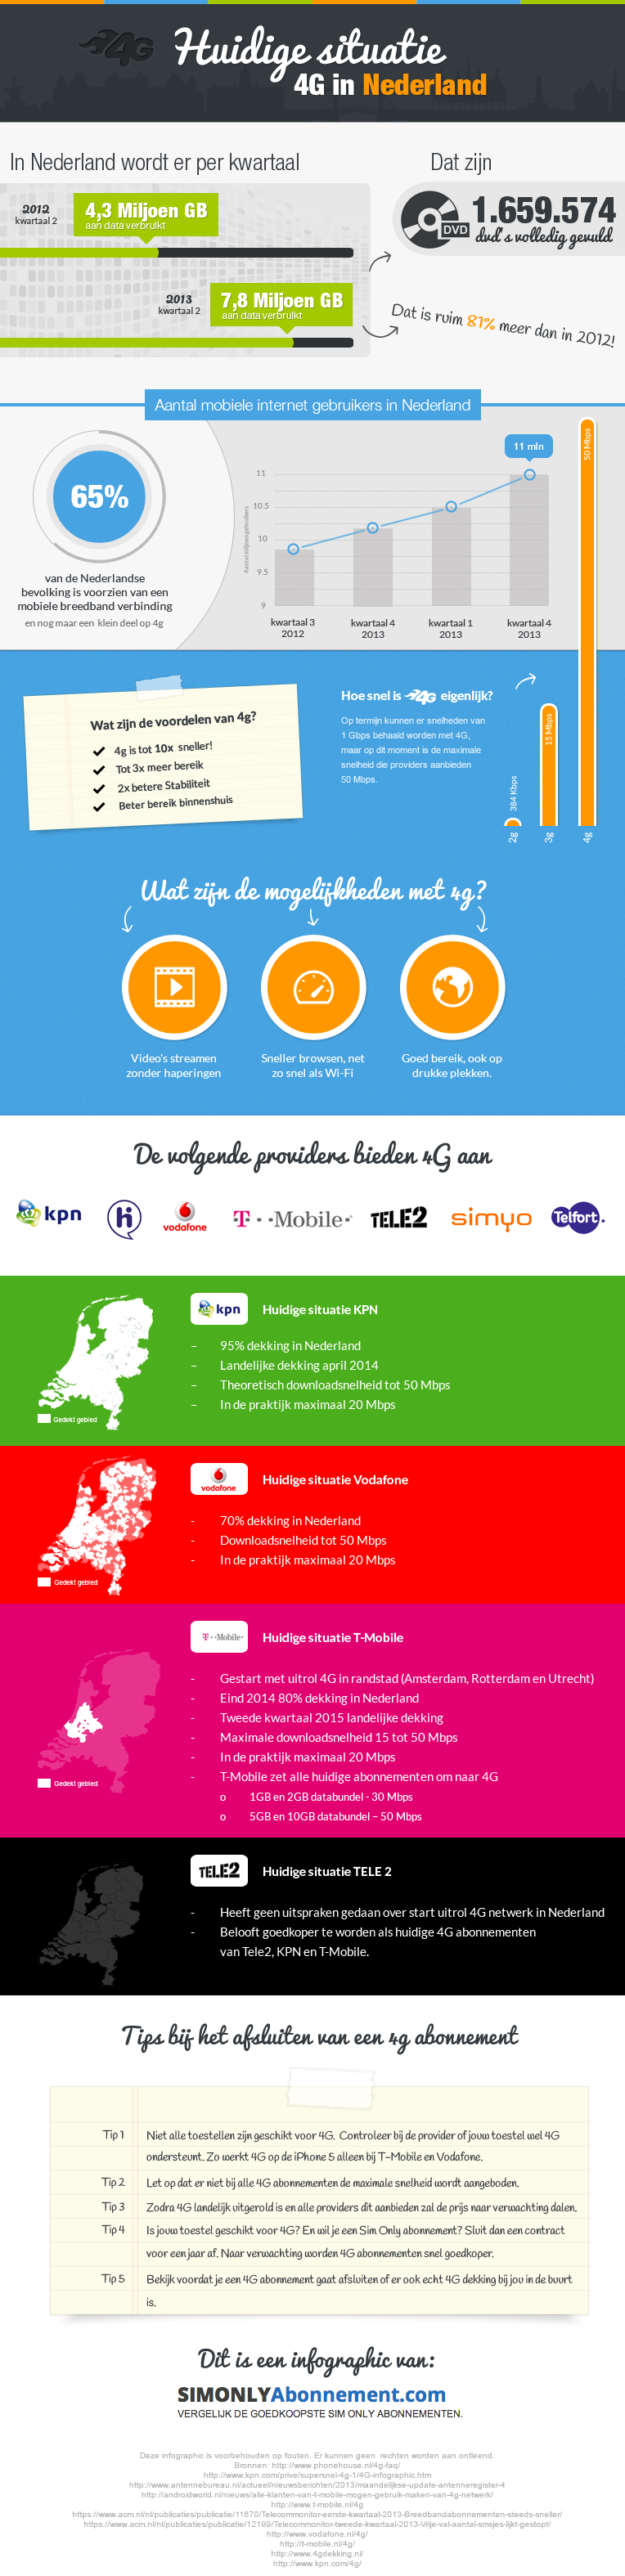 infographic-4g-new